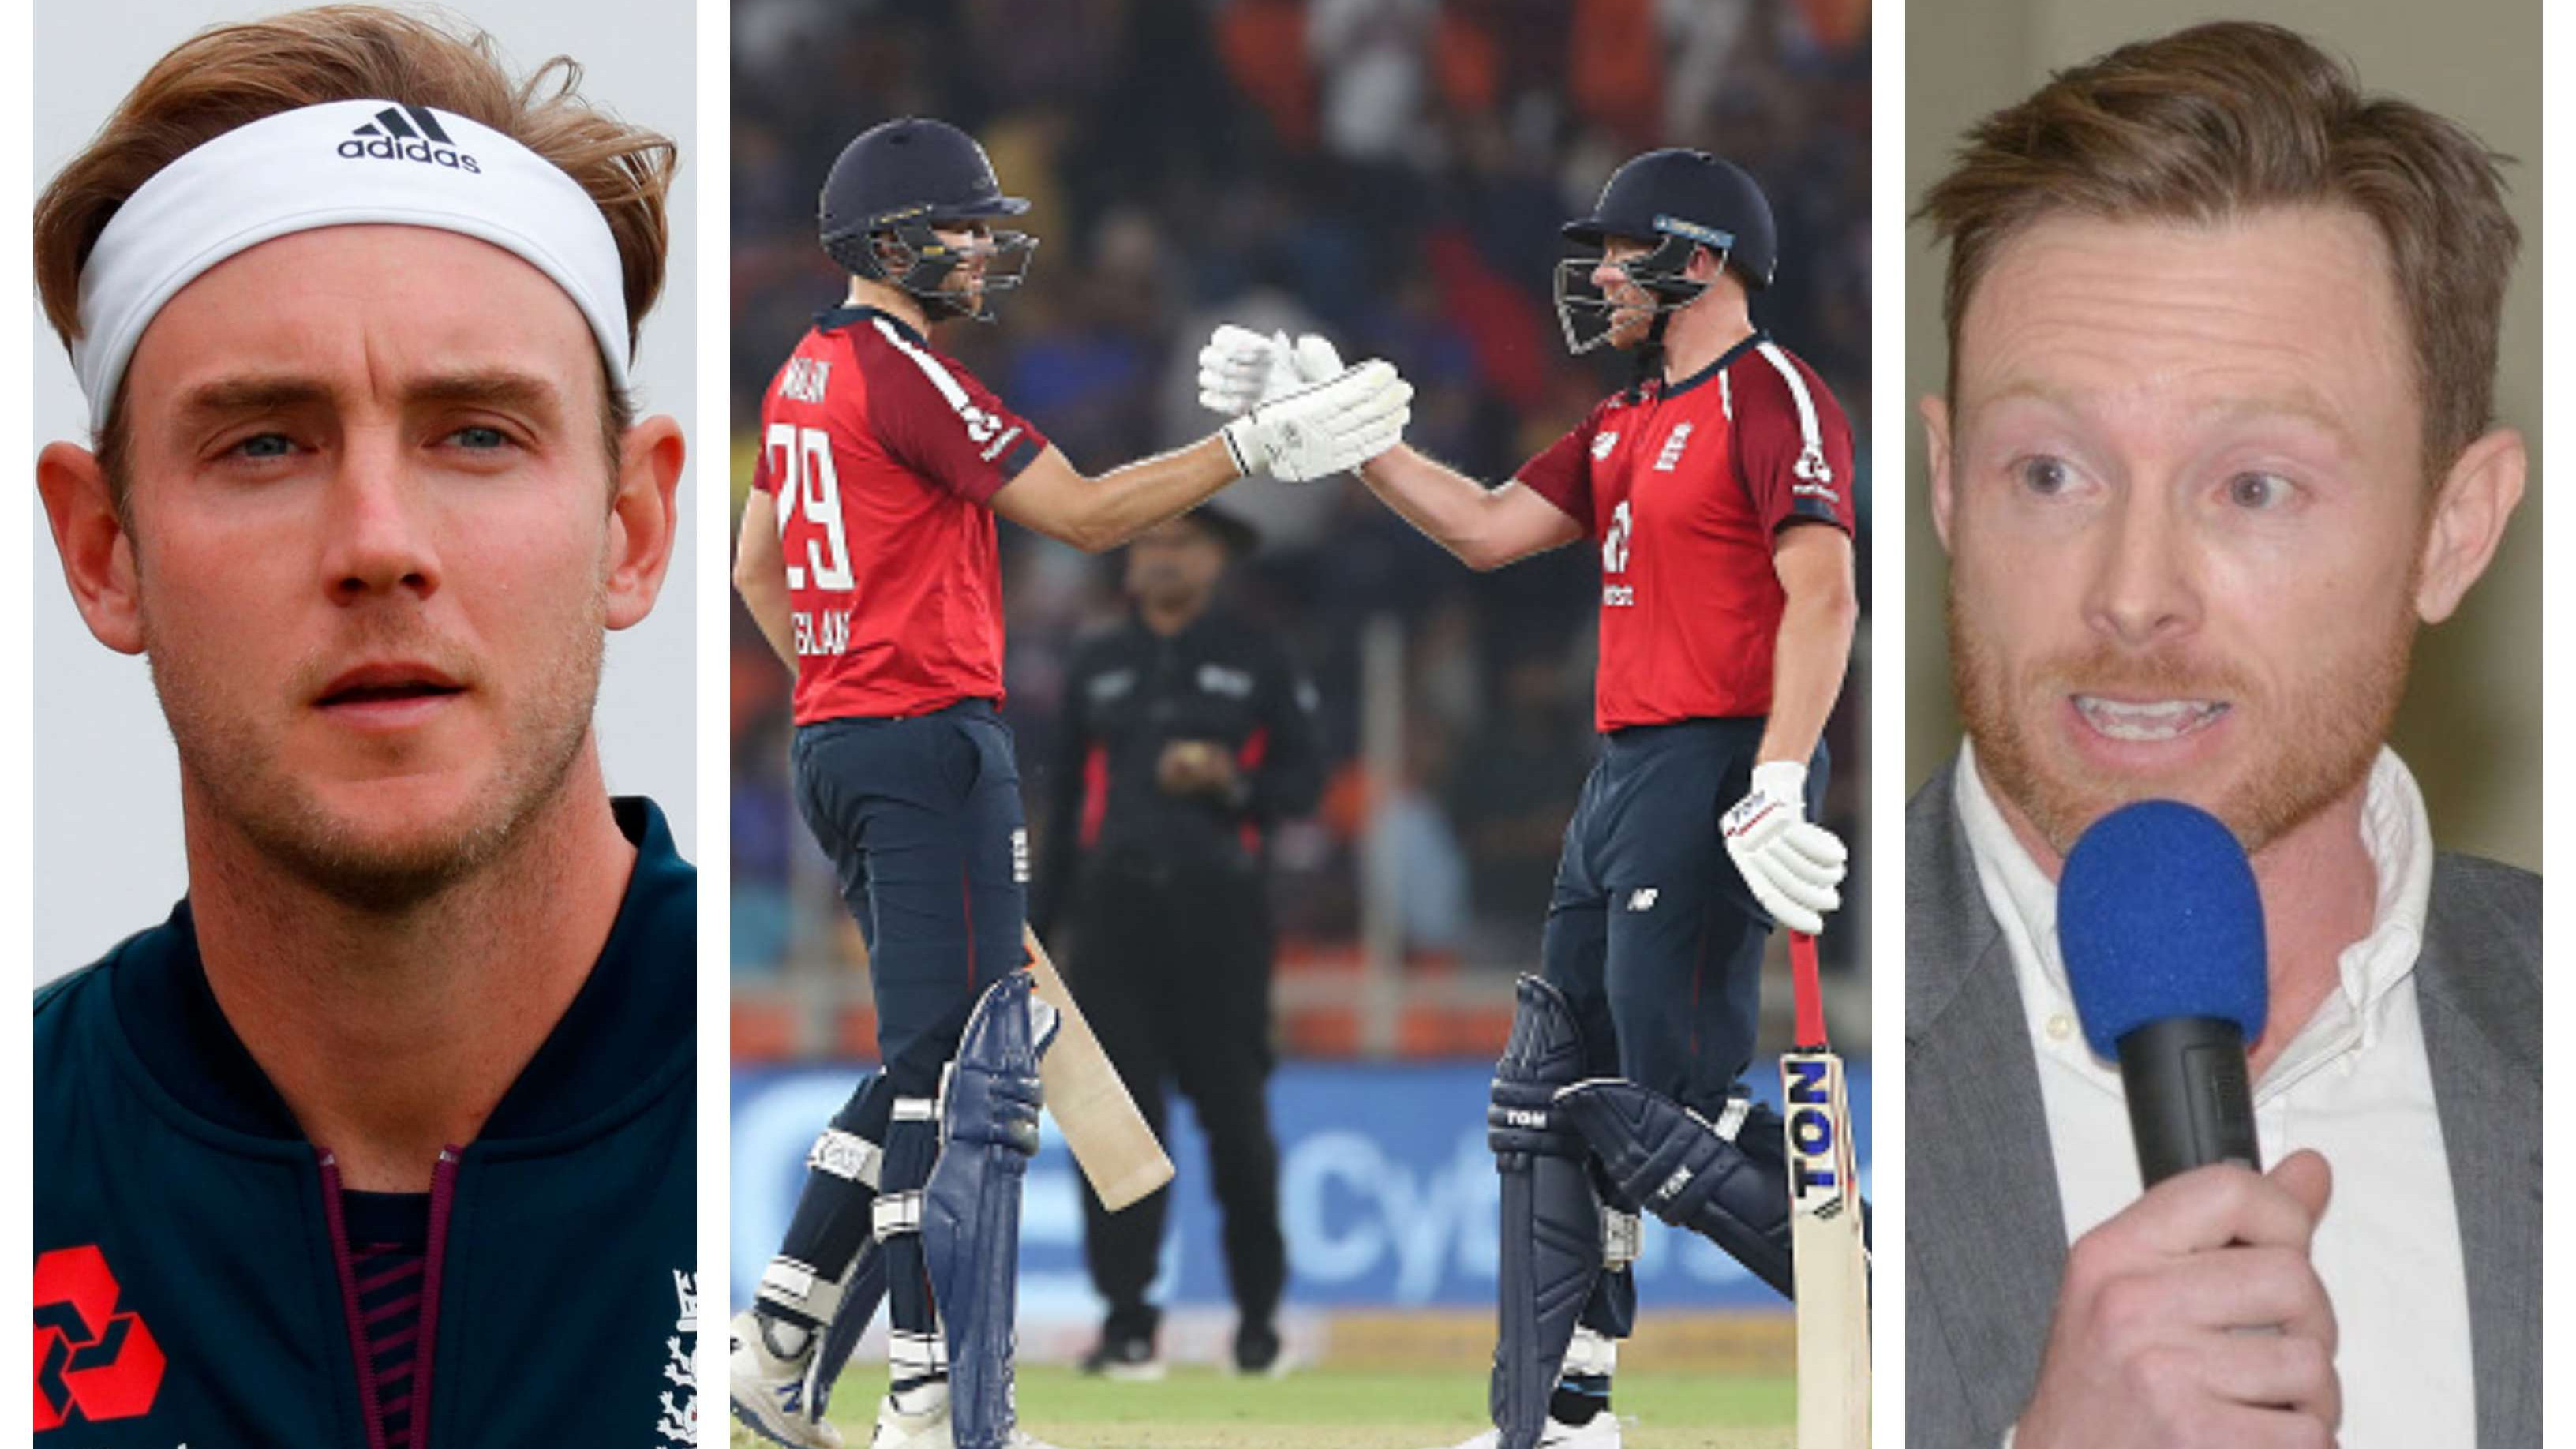 IND v ENG 2021: Cricket fraternity reacts to England's thumping 8-wicket win in first T20I